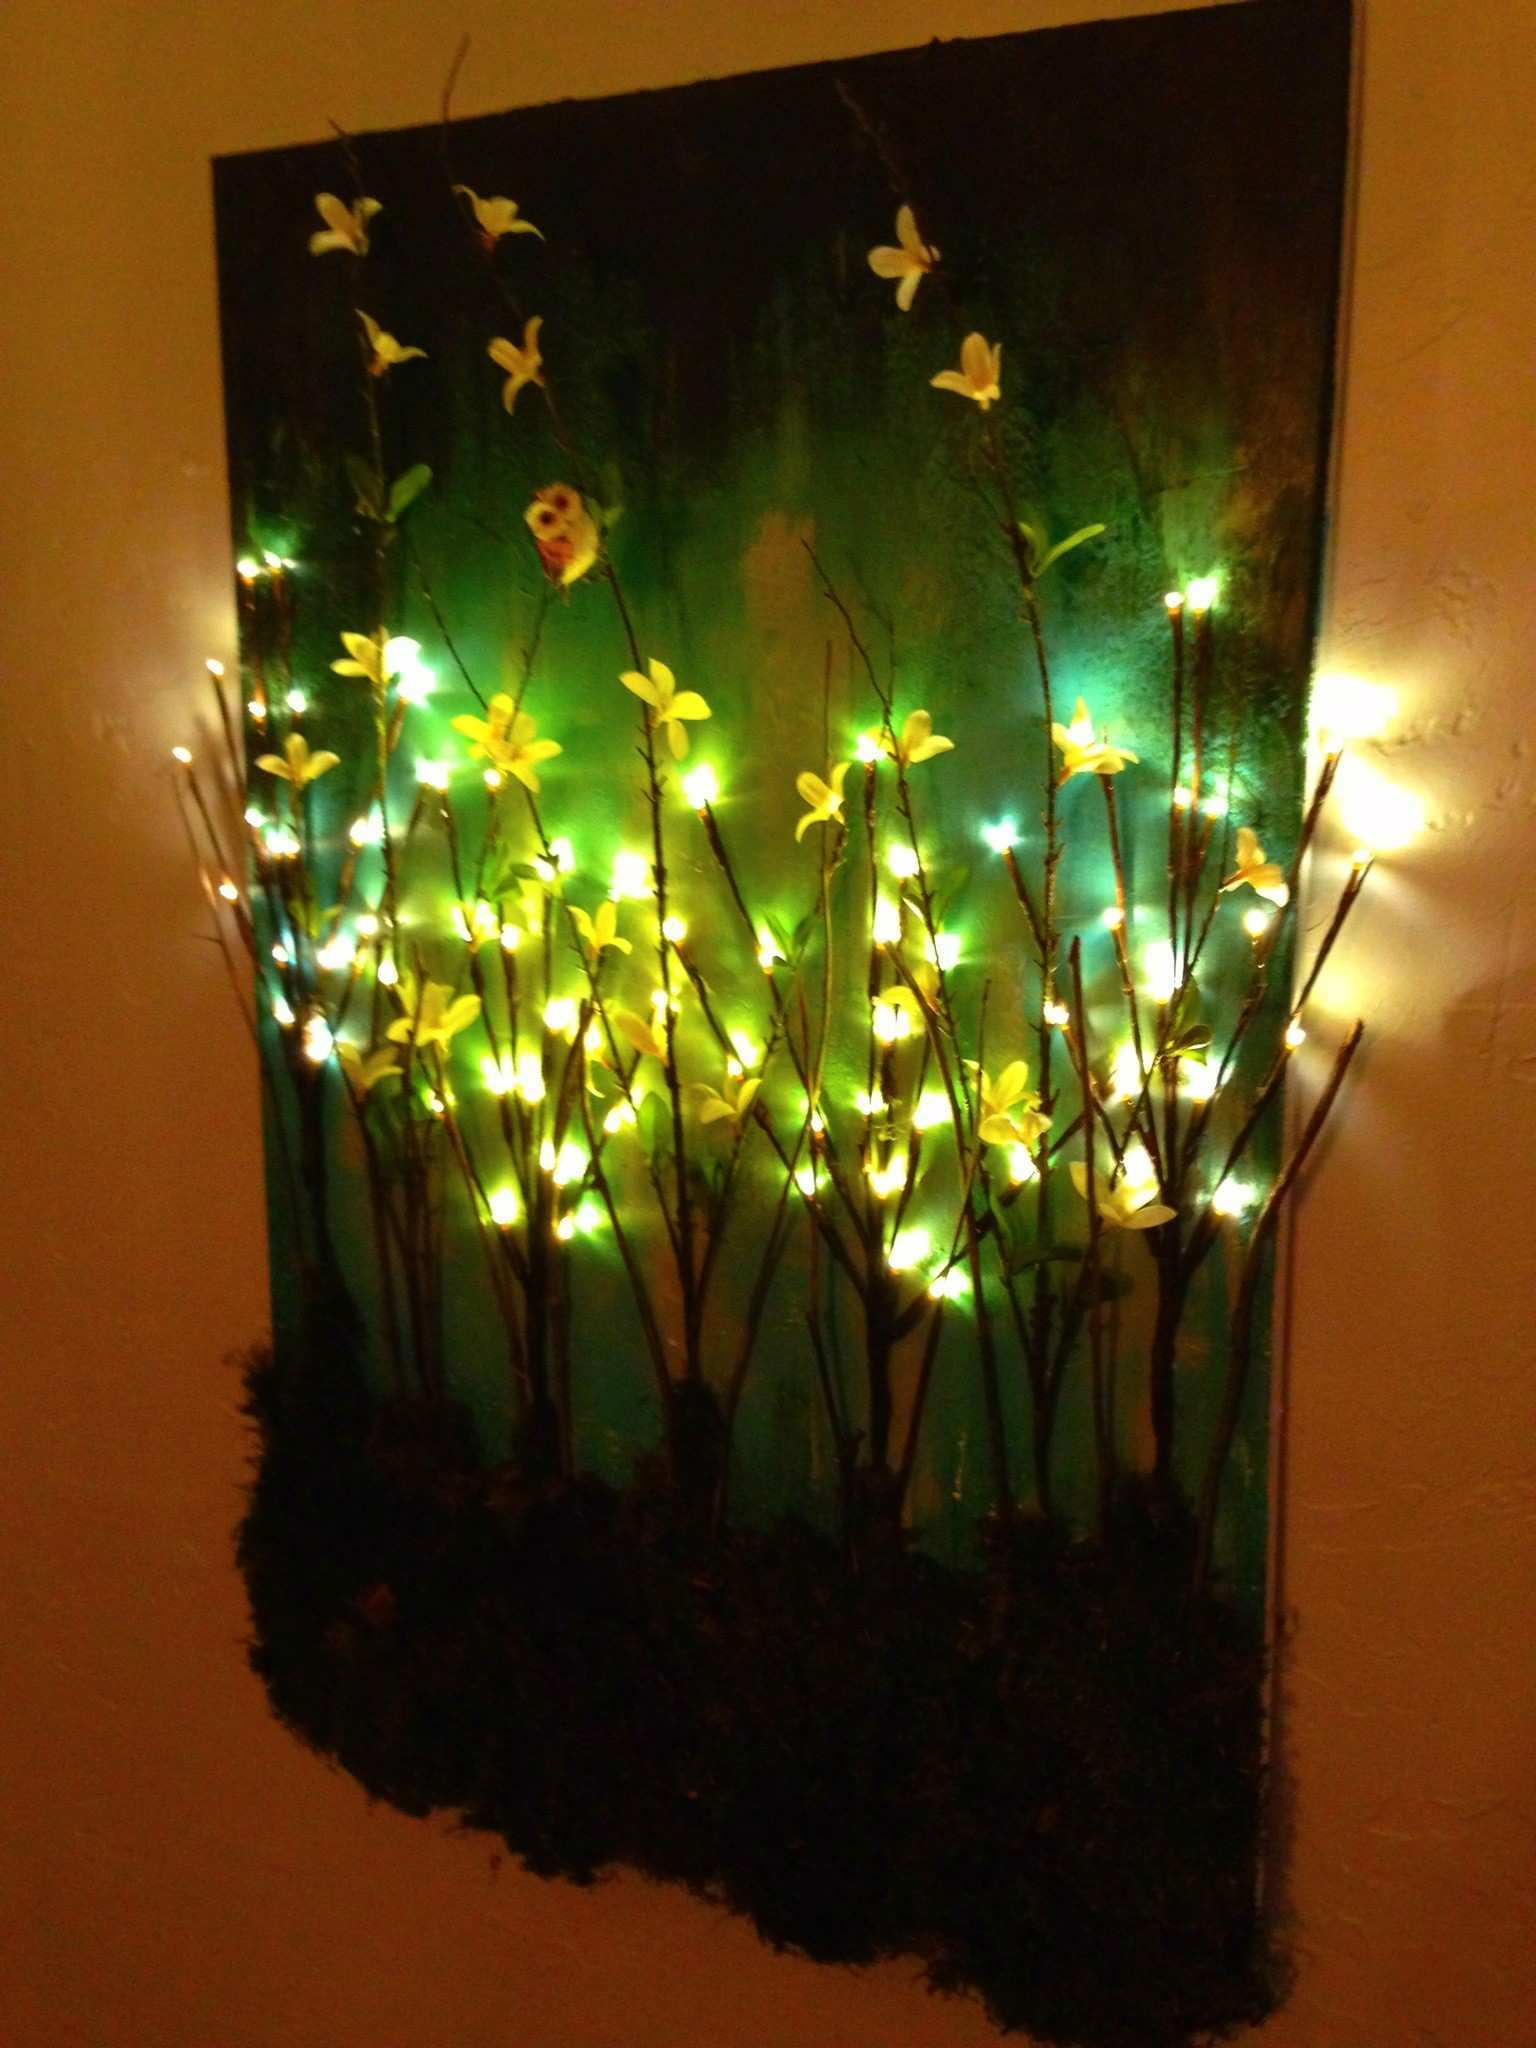 Dorable Lights Wall Decor Wall Painting Ideas